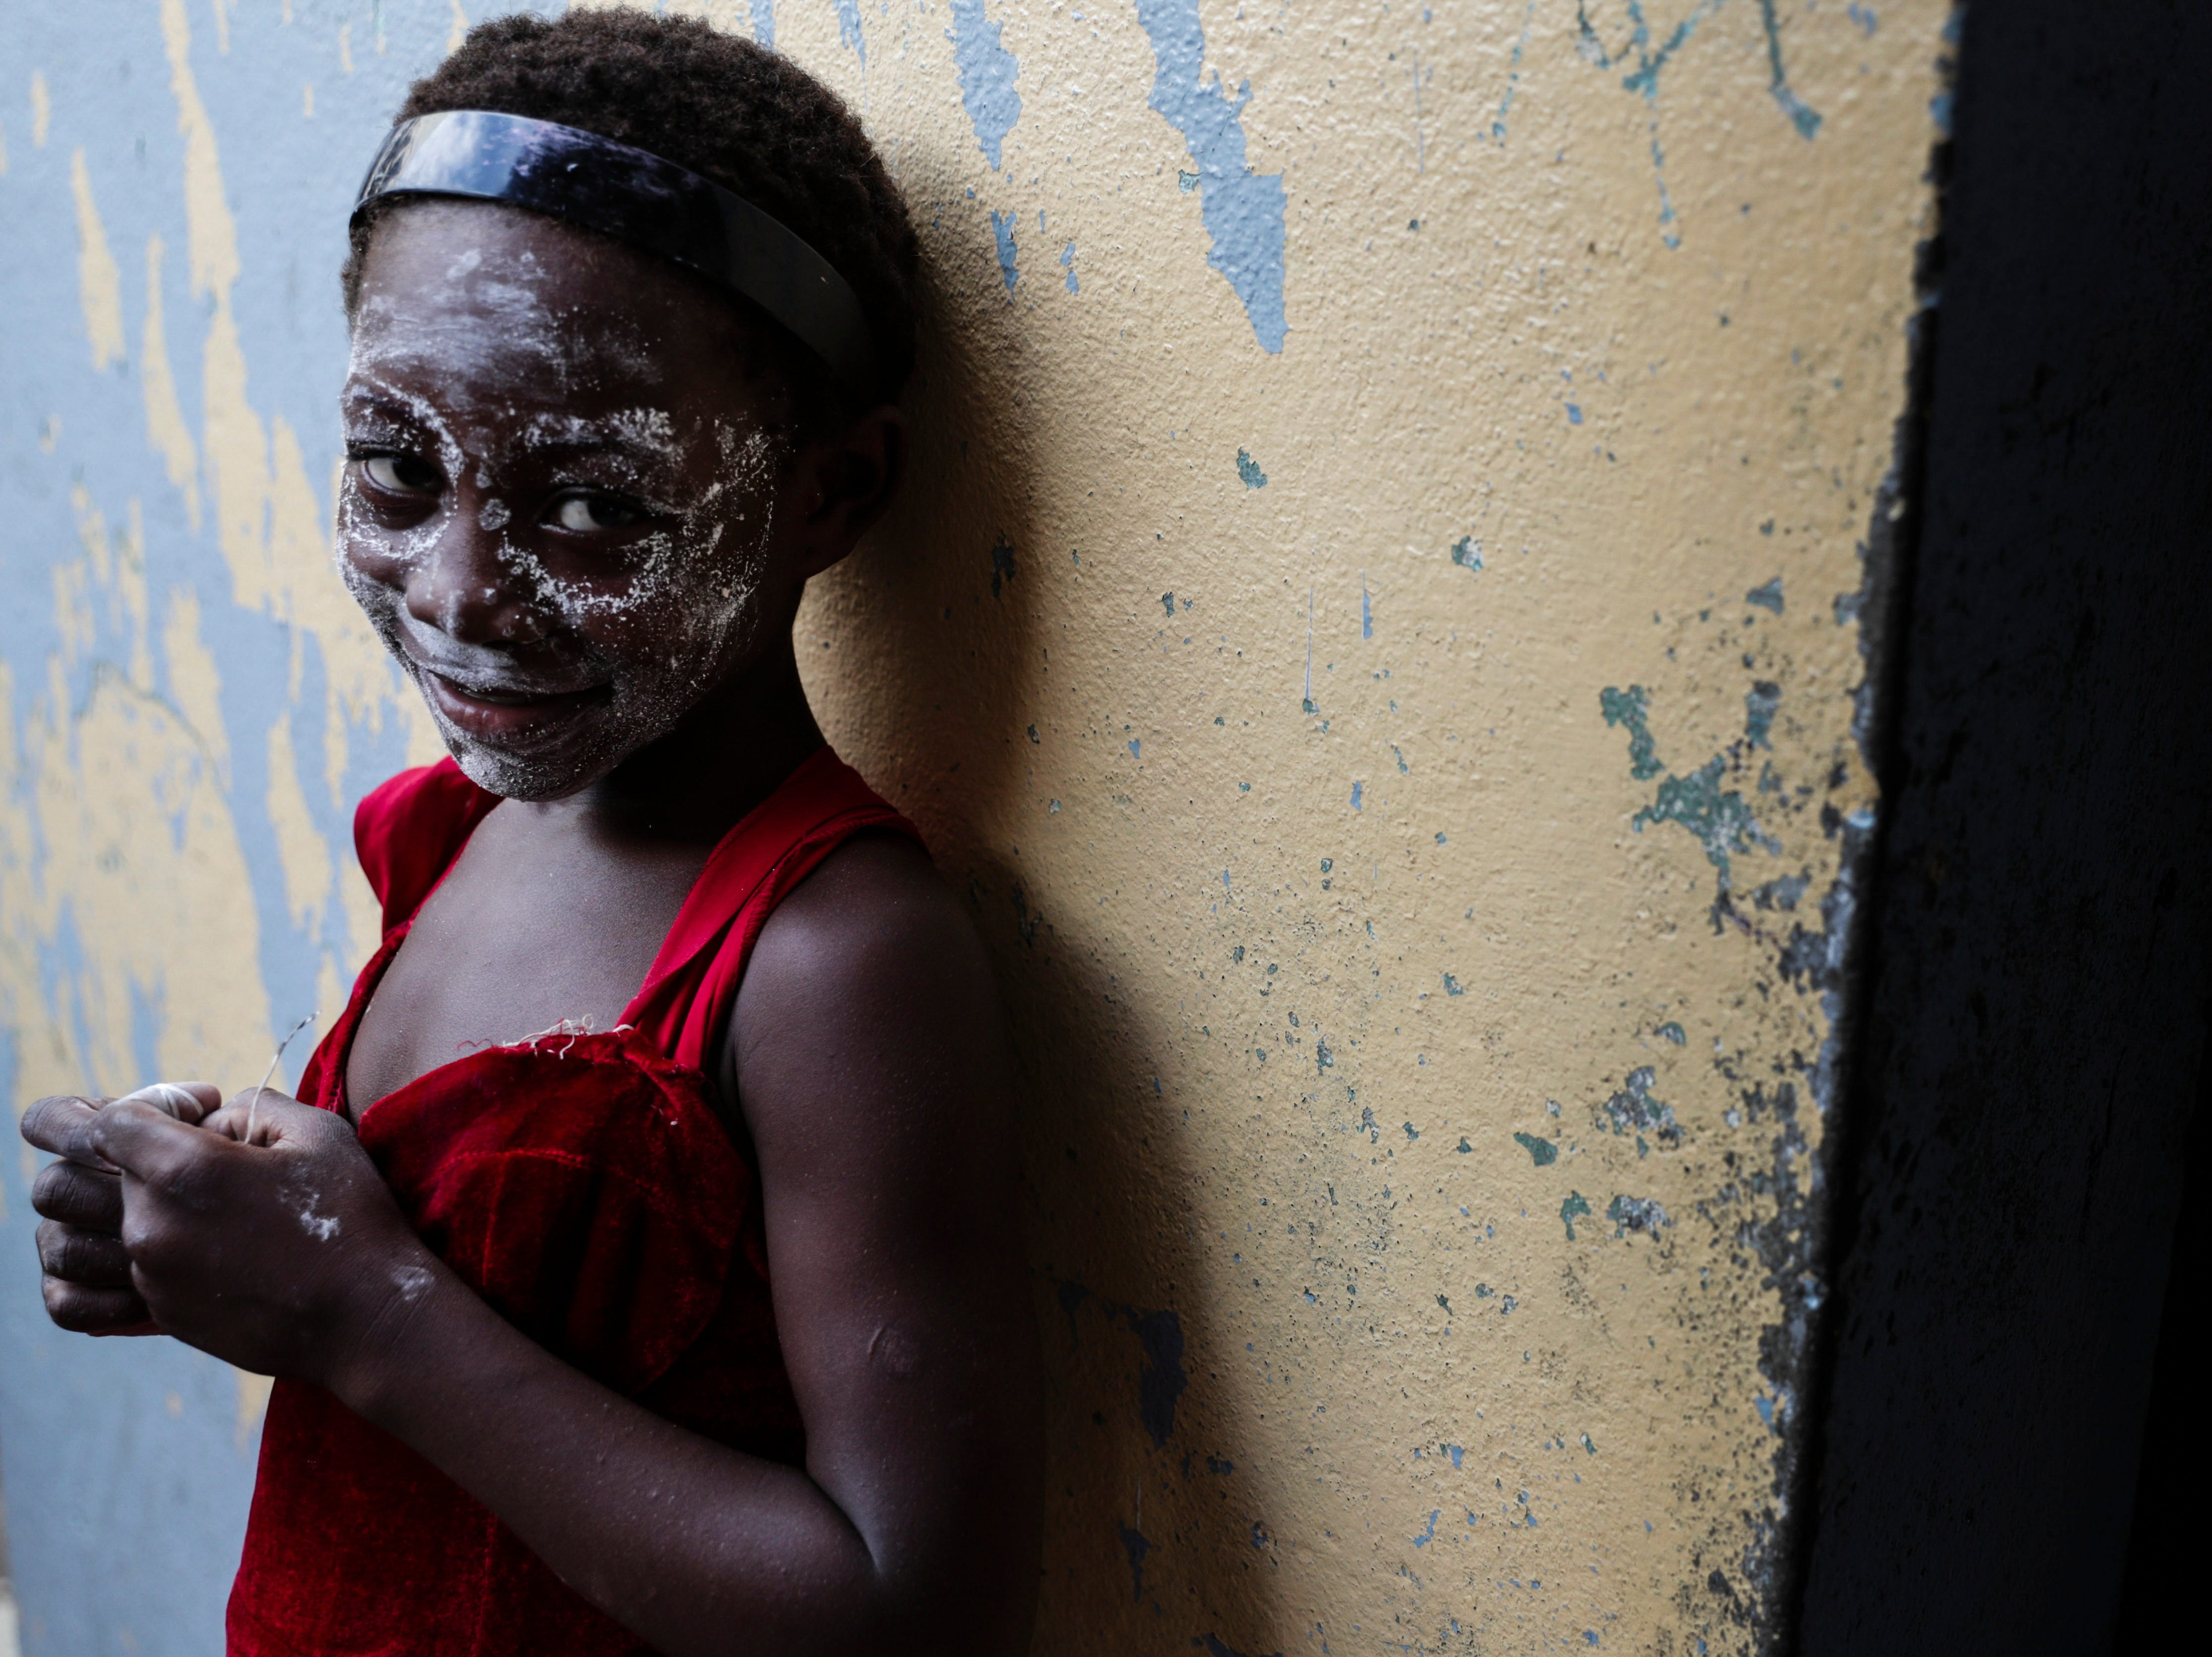 A girl takes shelter at Agostinho Neto School after the passage of Cyclone Idai, in Beira City, central Mozambique on March 22, 2019.